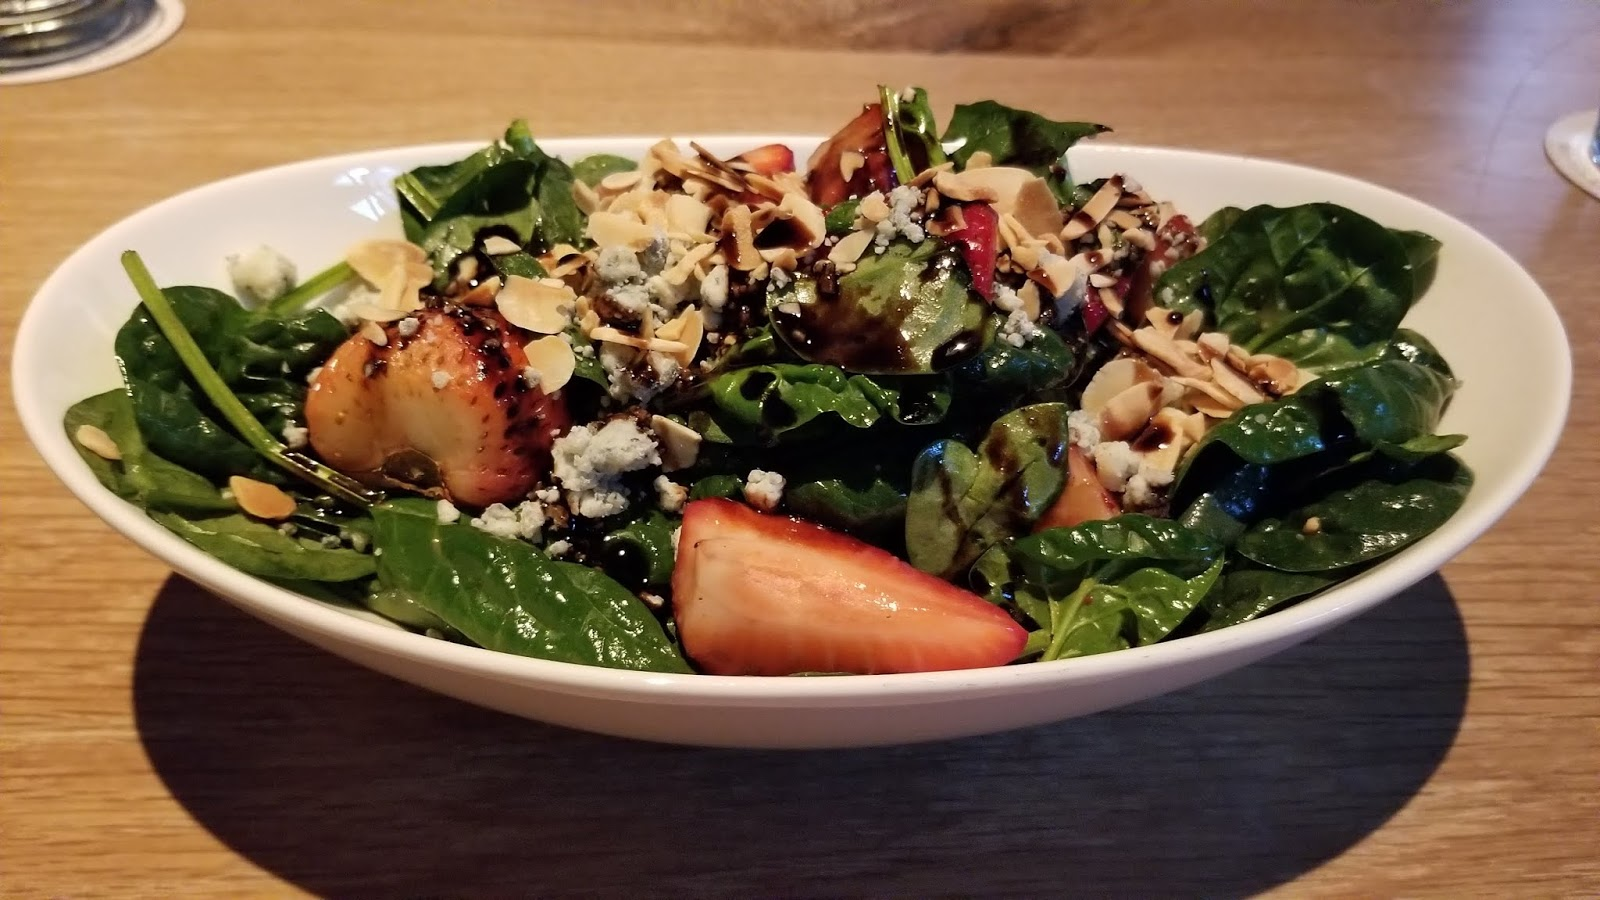 Seasons 52 spinach and strawberry salad